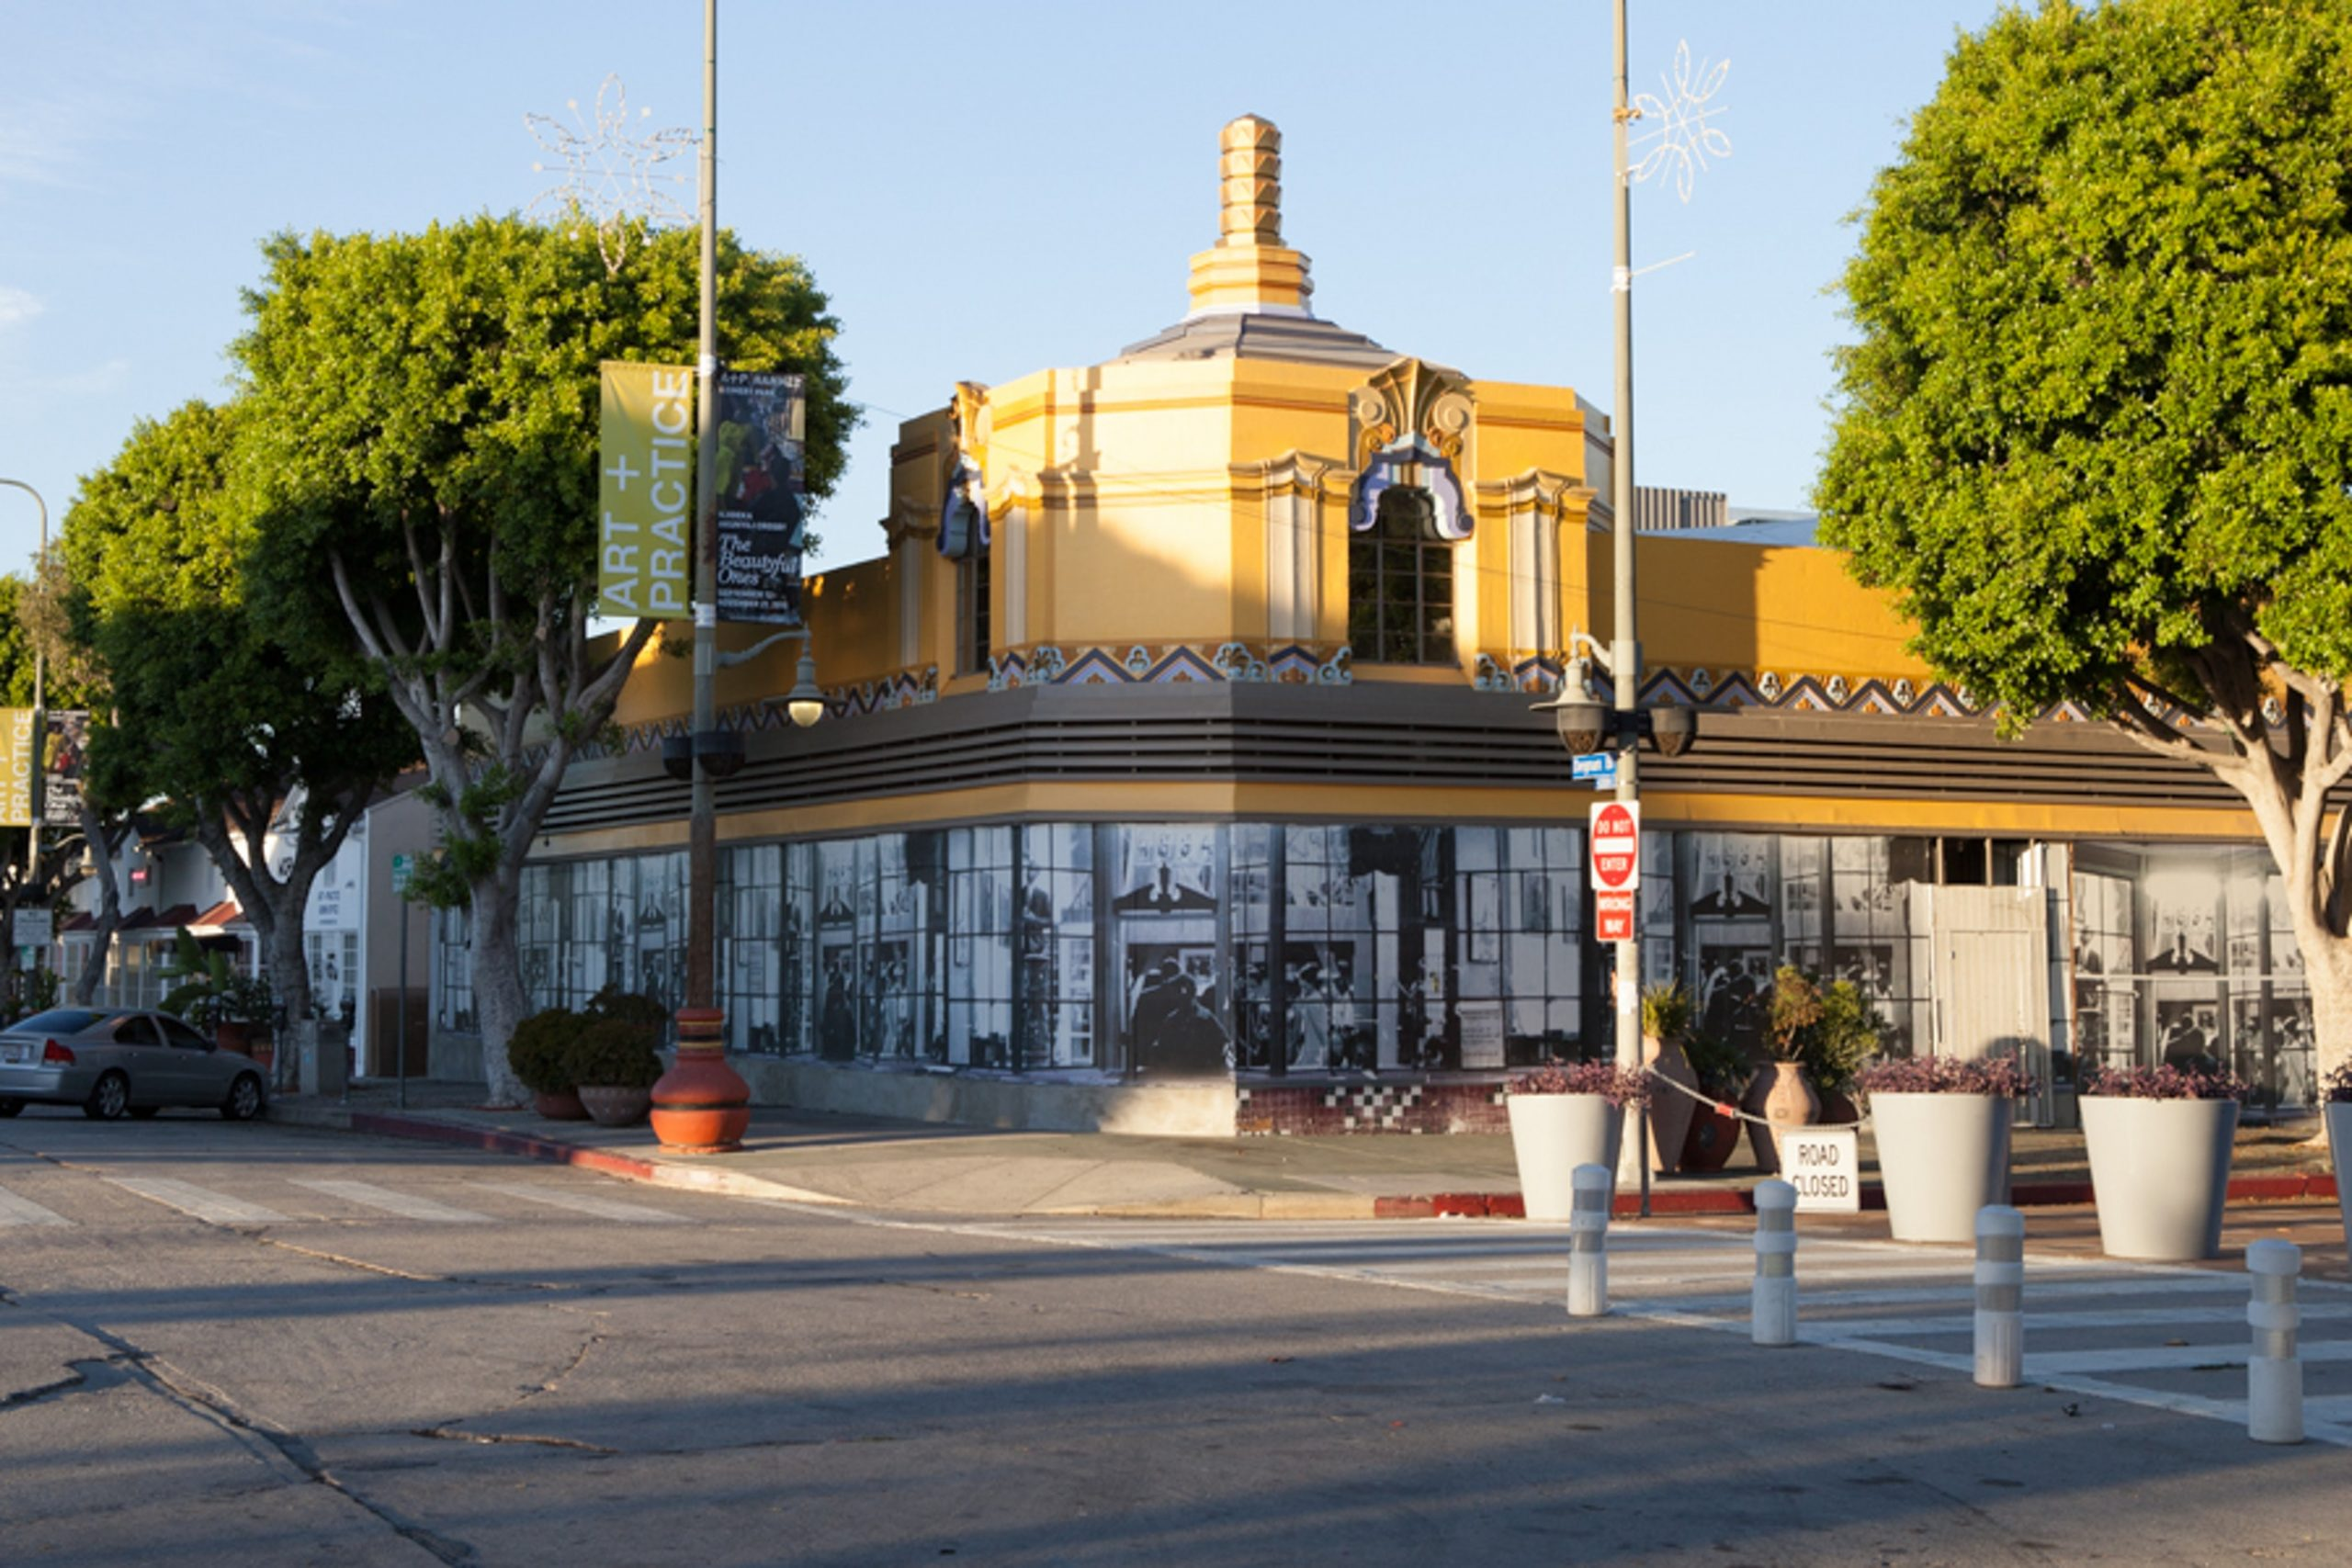 The A+P Art Deco building sits on the corner of 43rd Place and Degnan Boulevard in Leimert Park, Los Angeles. 9 October 2015. Photo by Natalie Hon.